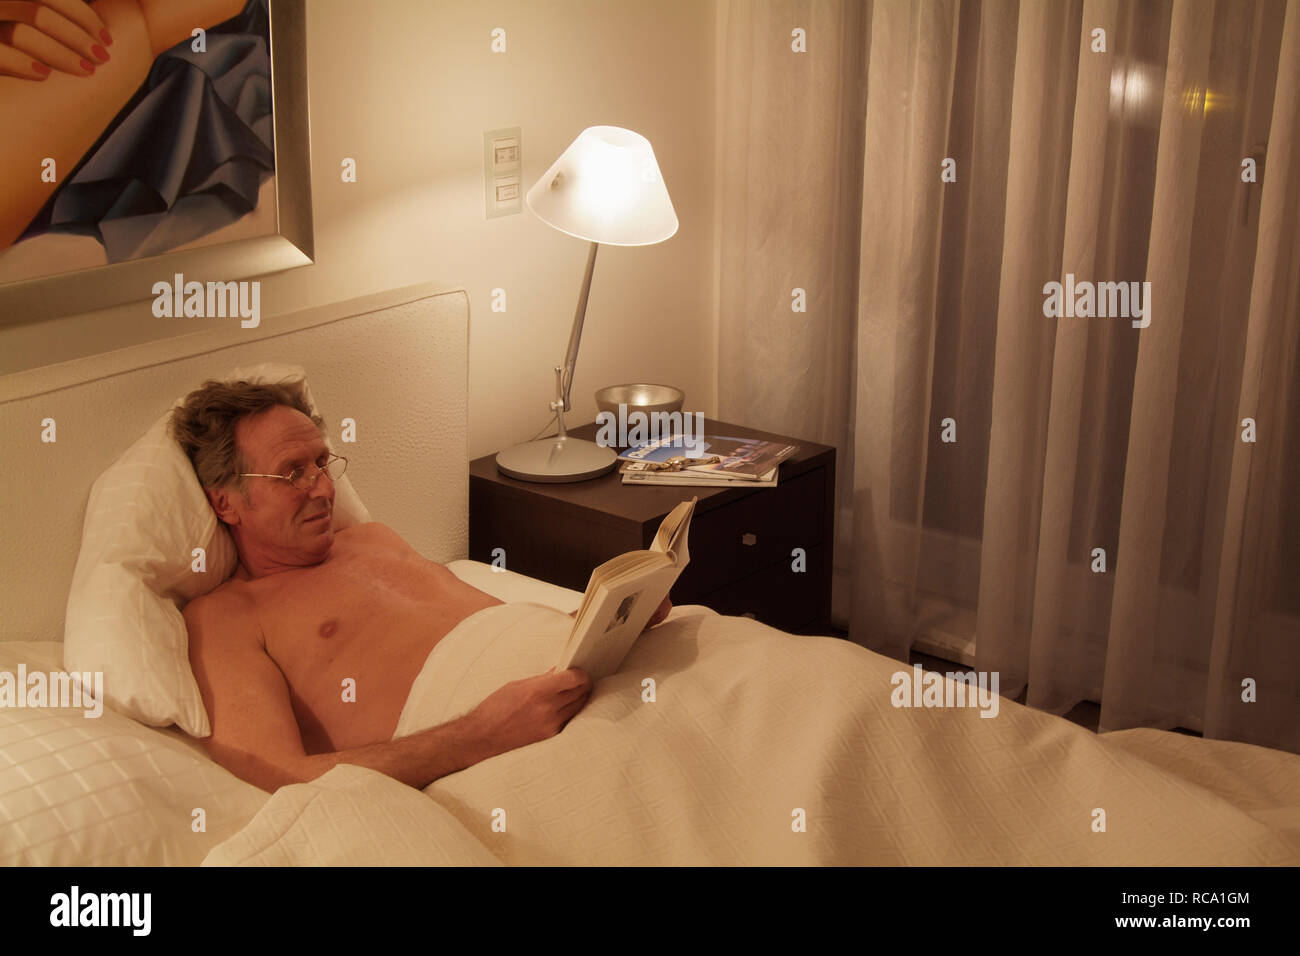 Mann mittleren Alters liest ein Buch im Bett | middleaged man is reading a book in bed - Stock Image